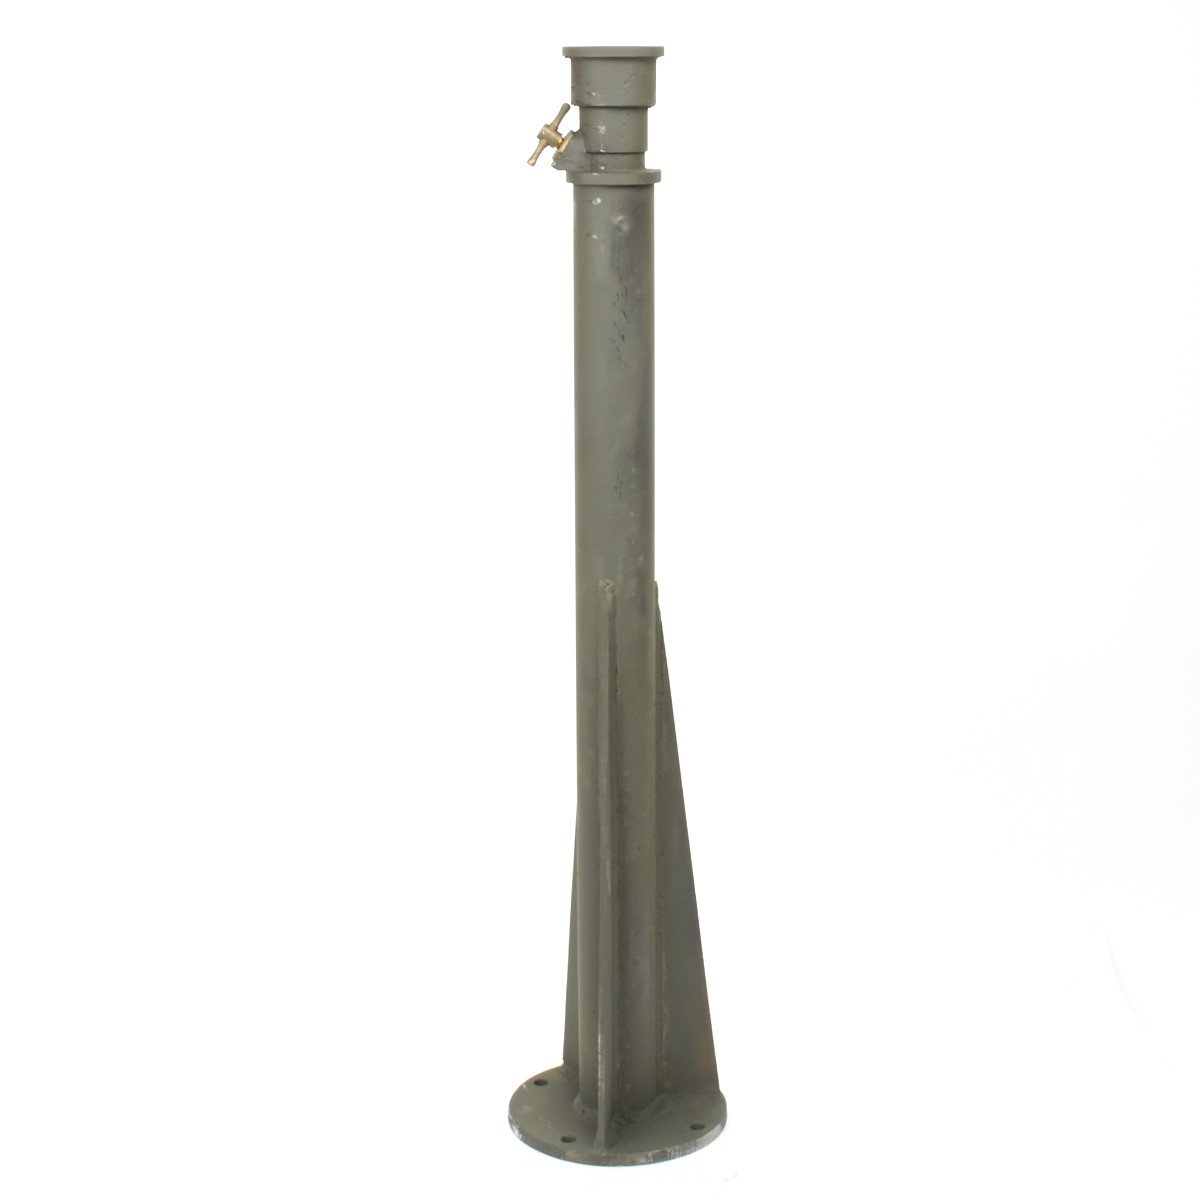 U S  WWII M25 Pedestal Mount for Jeeps and Halftracks